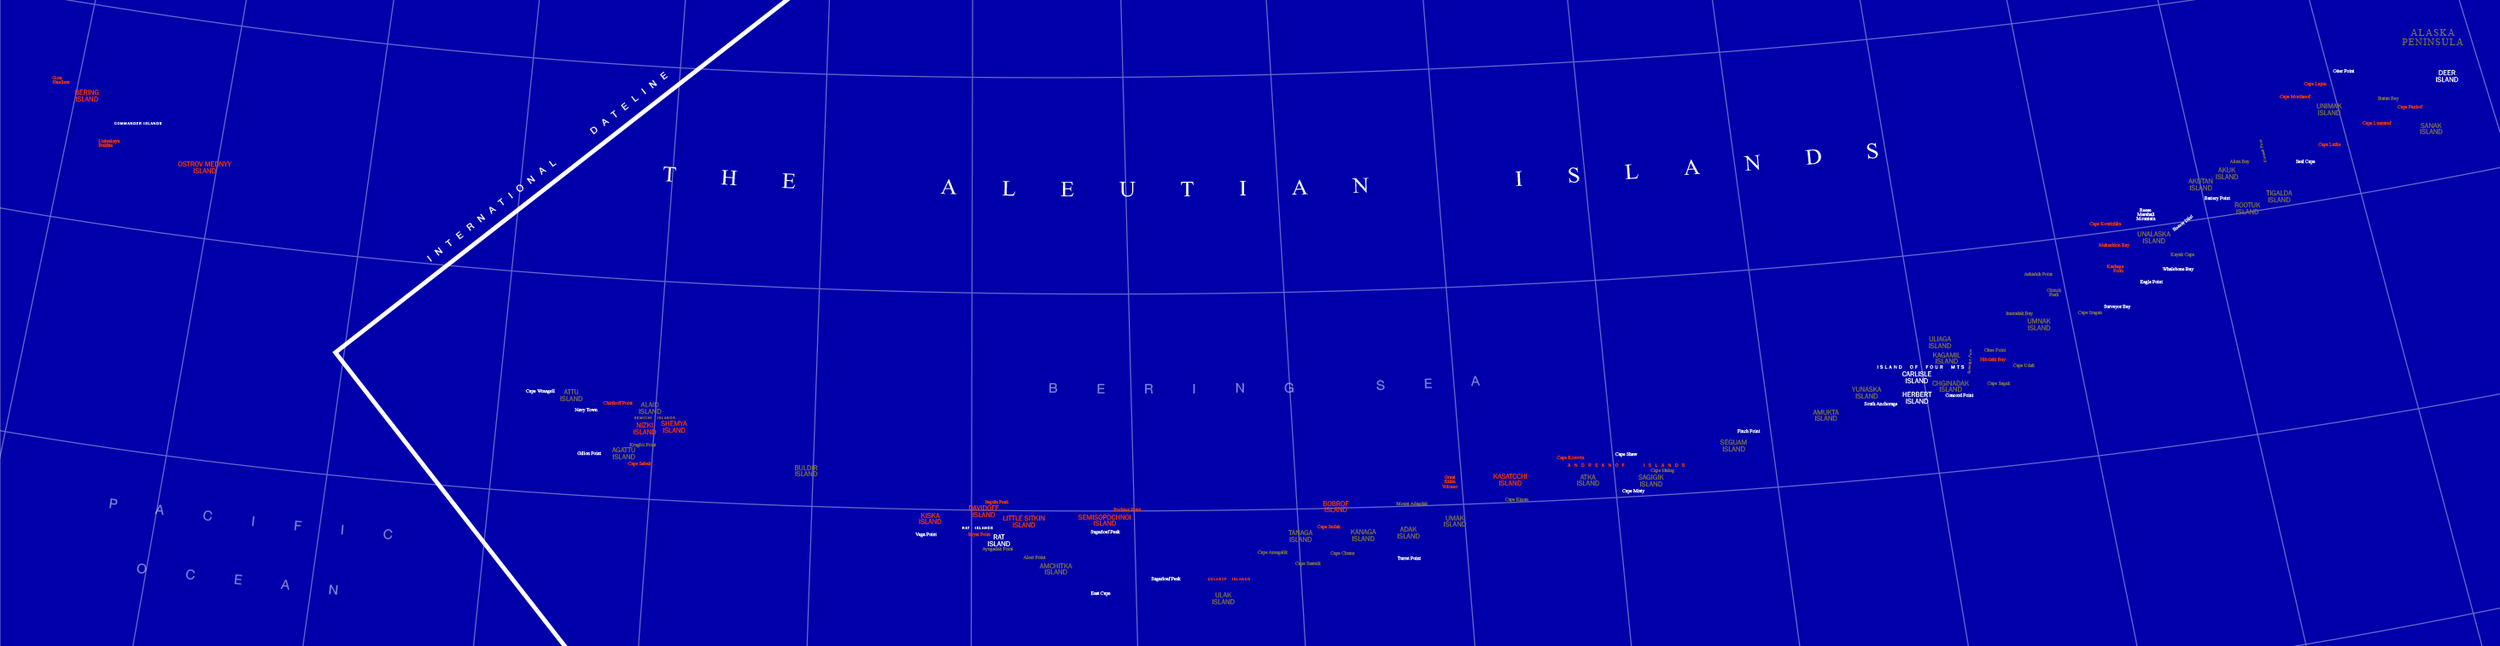 Aleutian Islands TypeMap.png